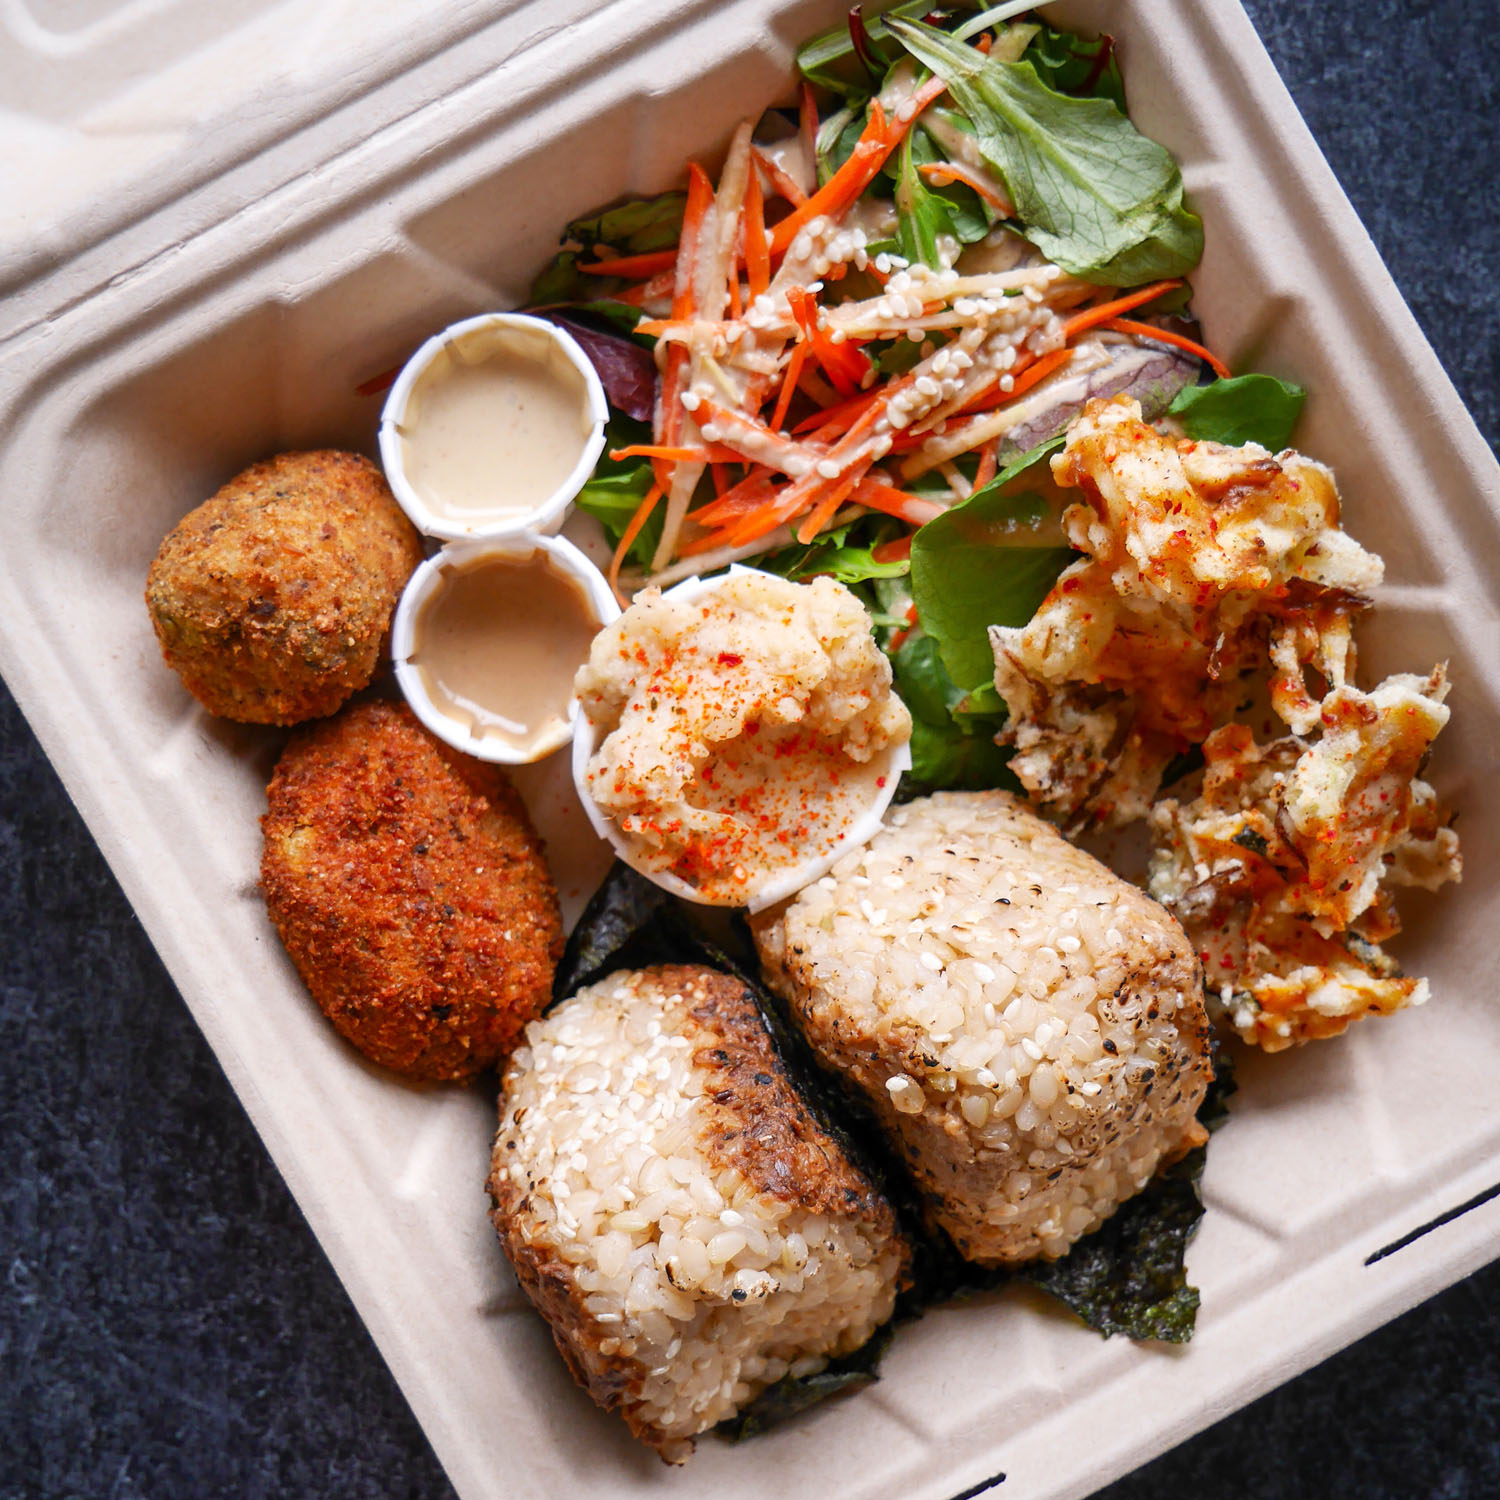 A photo of a takeout container with vegan onigiri, curried korokke, kakiage, giant tater tots, and salad from Obon Shokudo